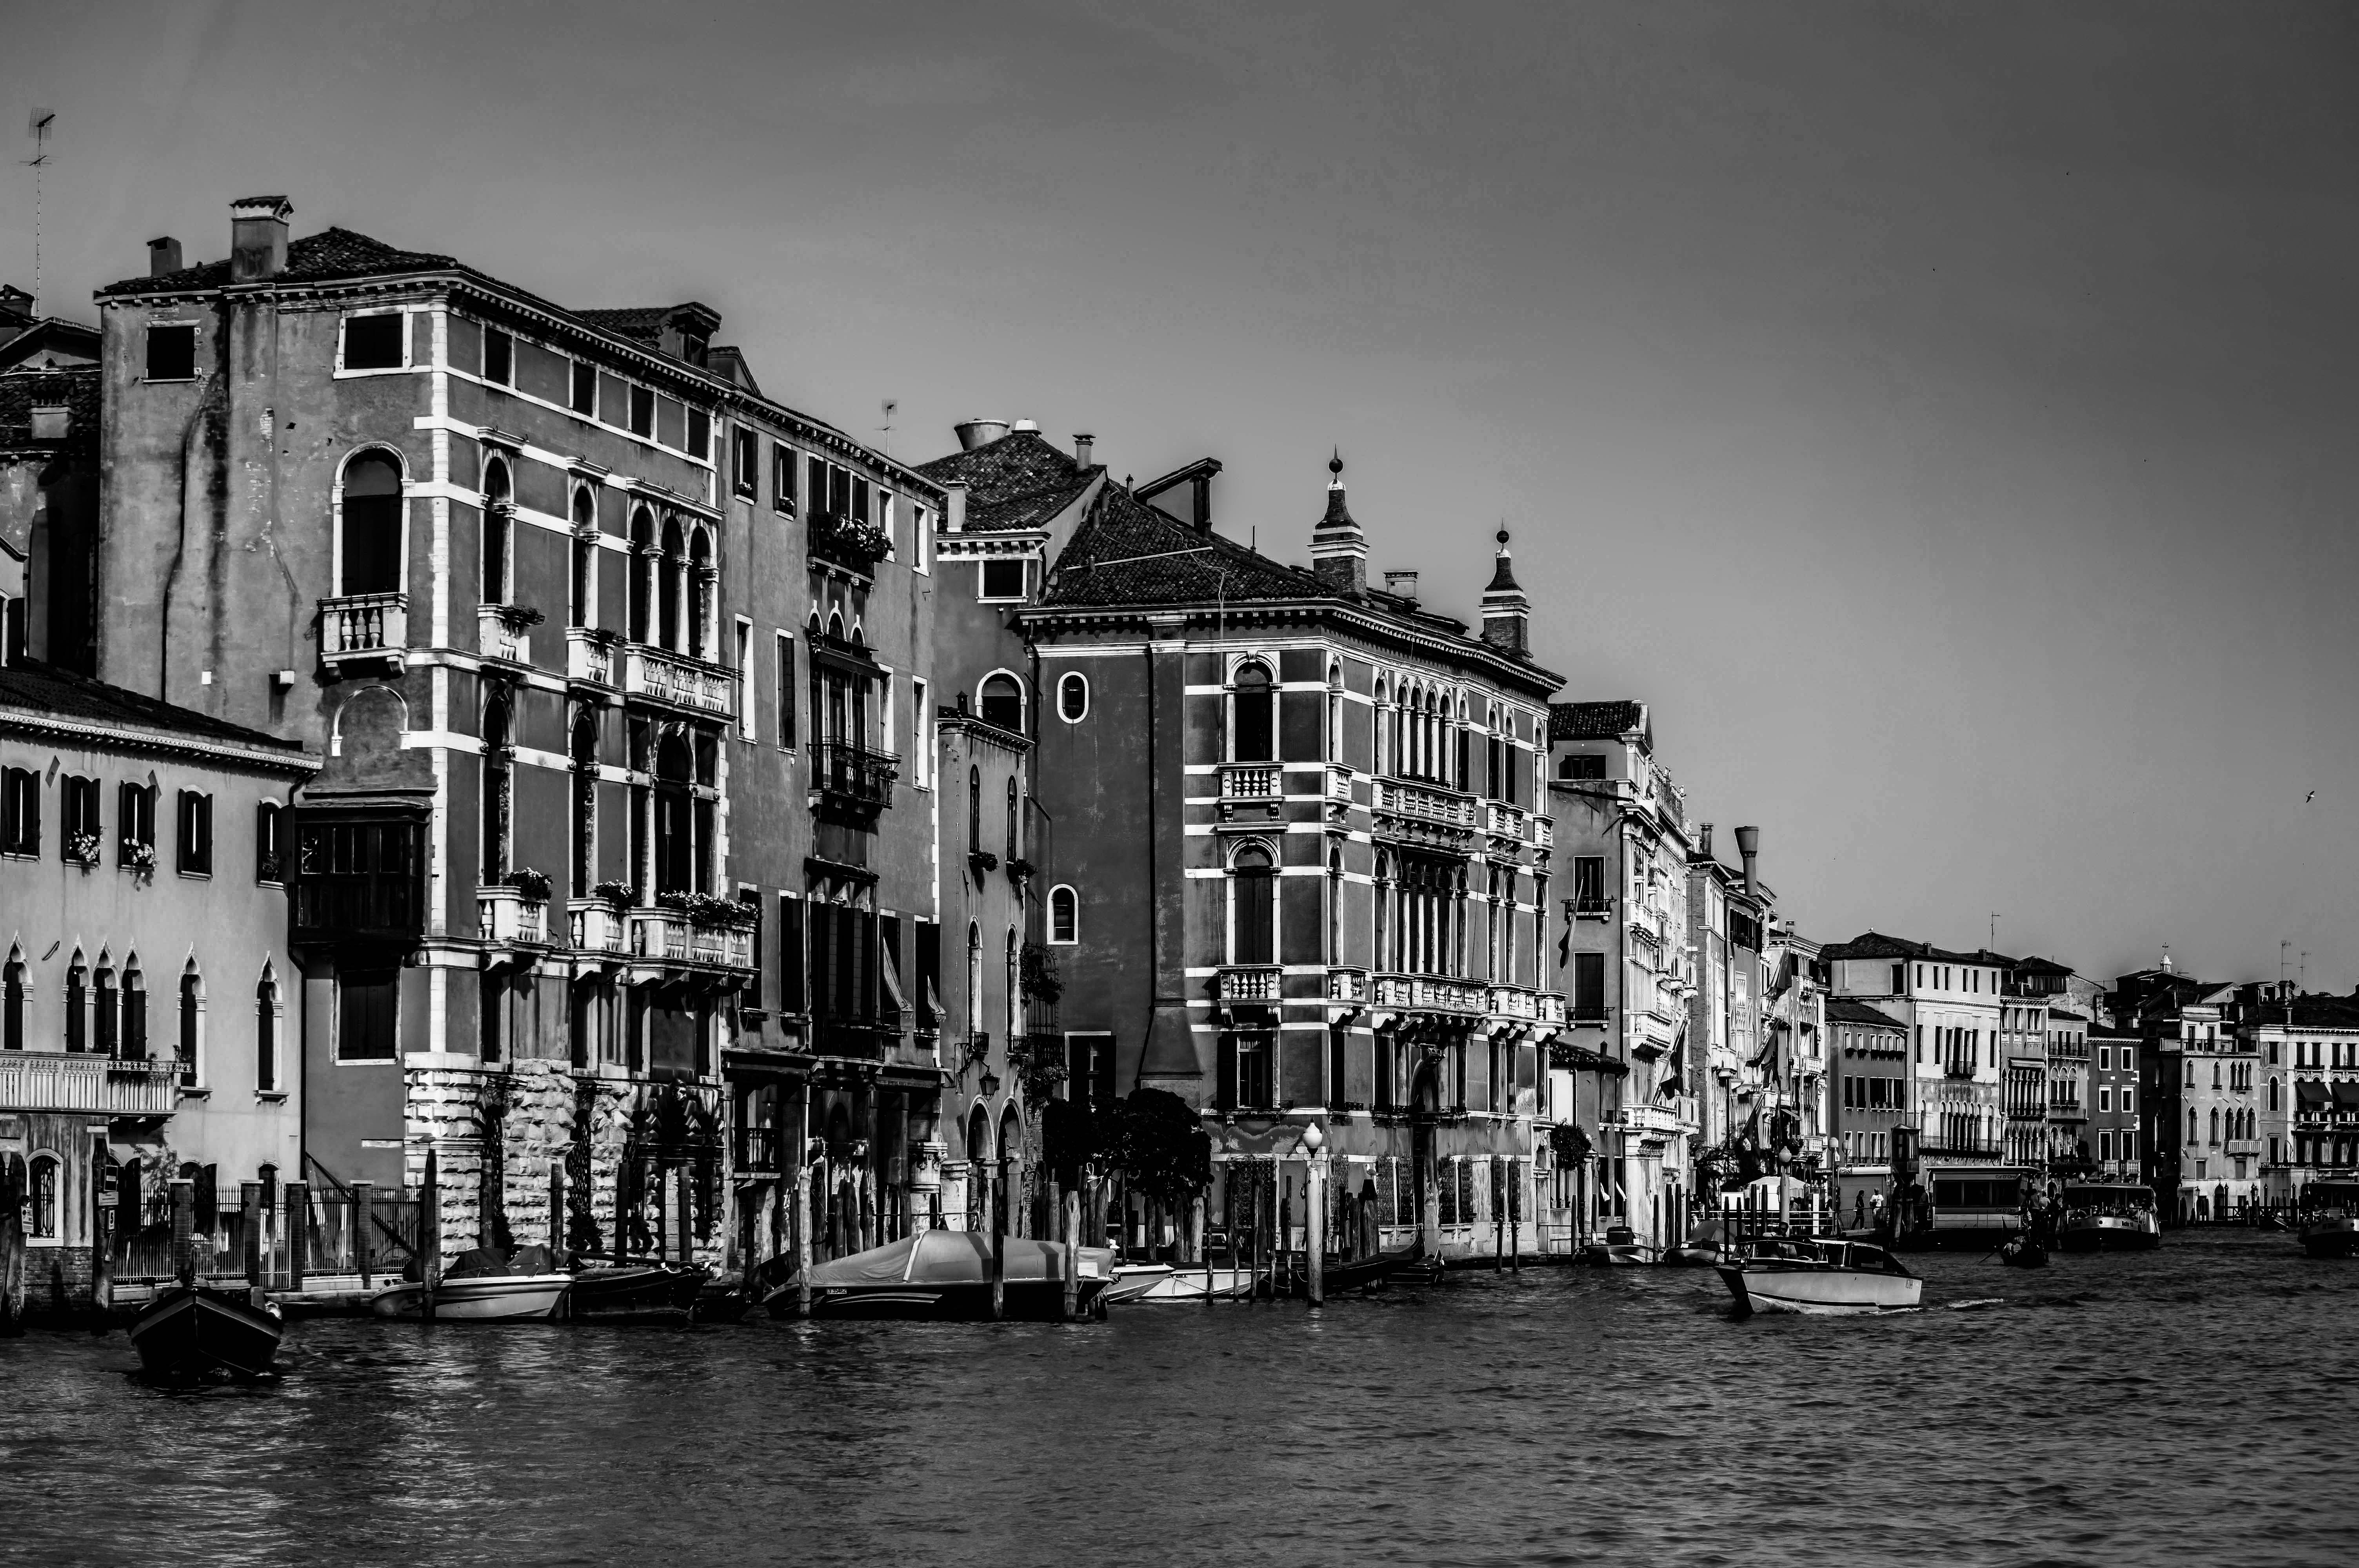 Concrete Houses Beside Body of Water, Architecture, River, Watercraft, Water, HQ Photo